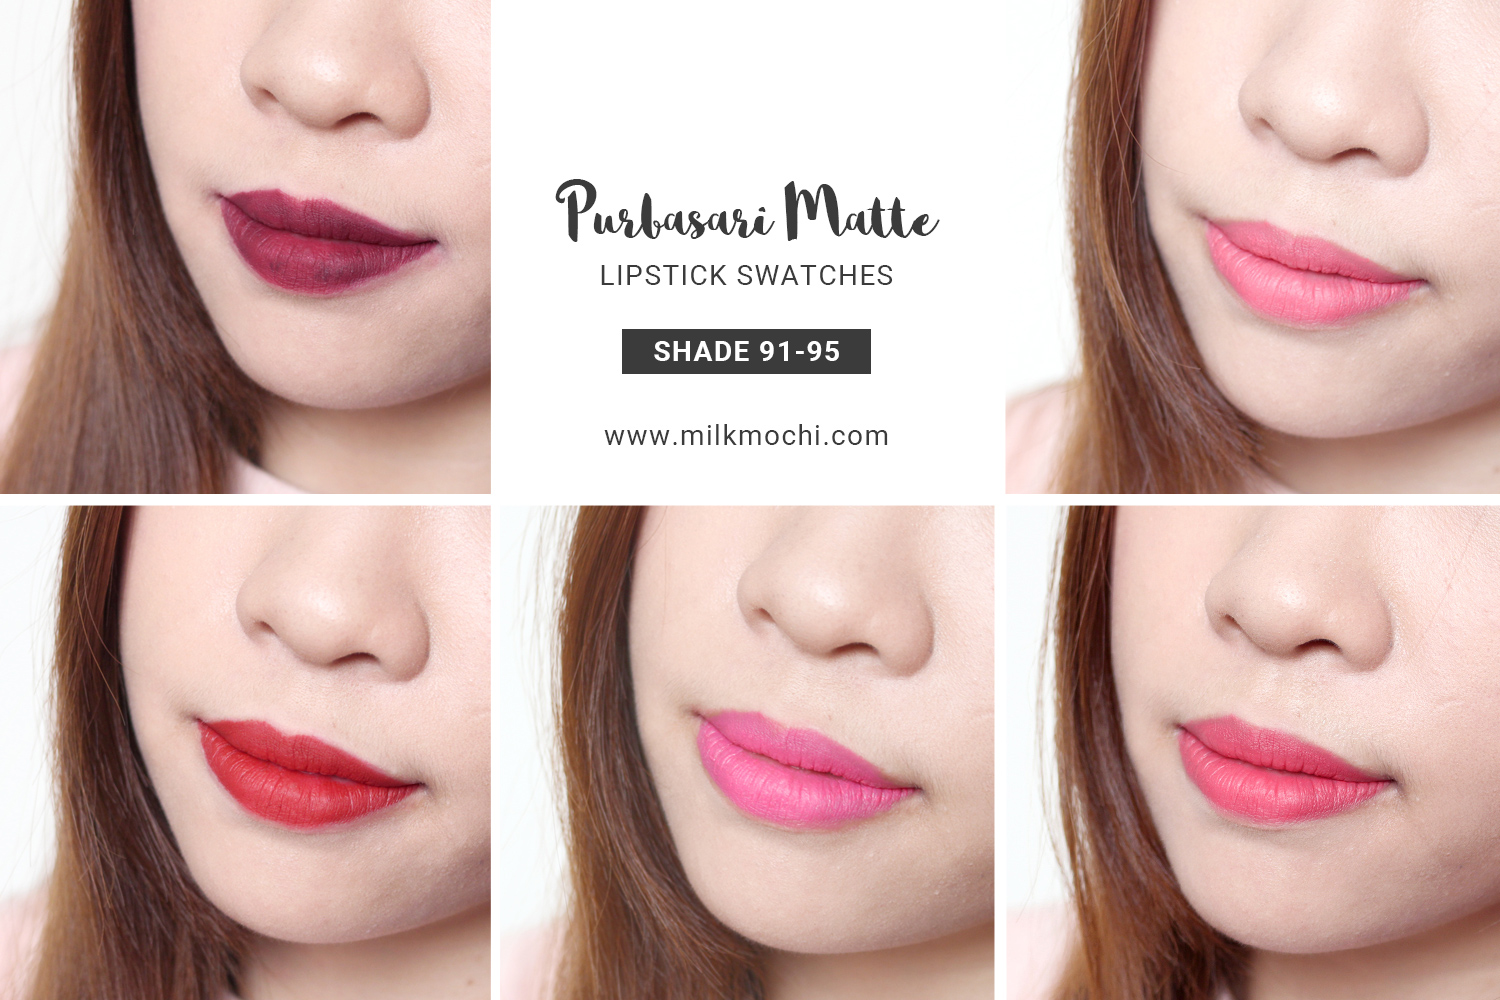 Purbasari Lipstick Swatch 90 The Art Of Beauty Lipstik Collor Matte Color New Shade No 91 95 Swatches And